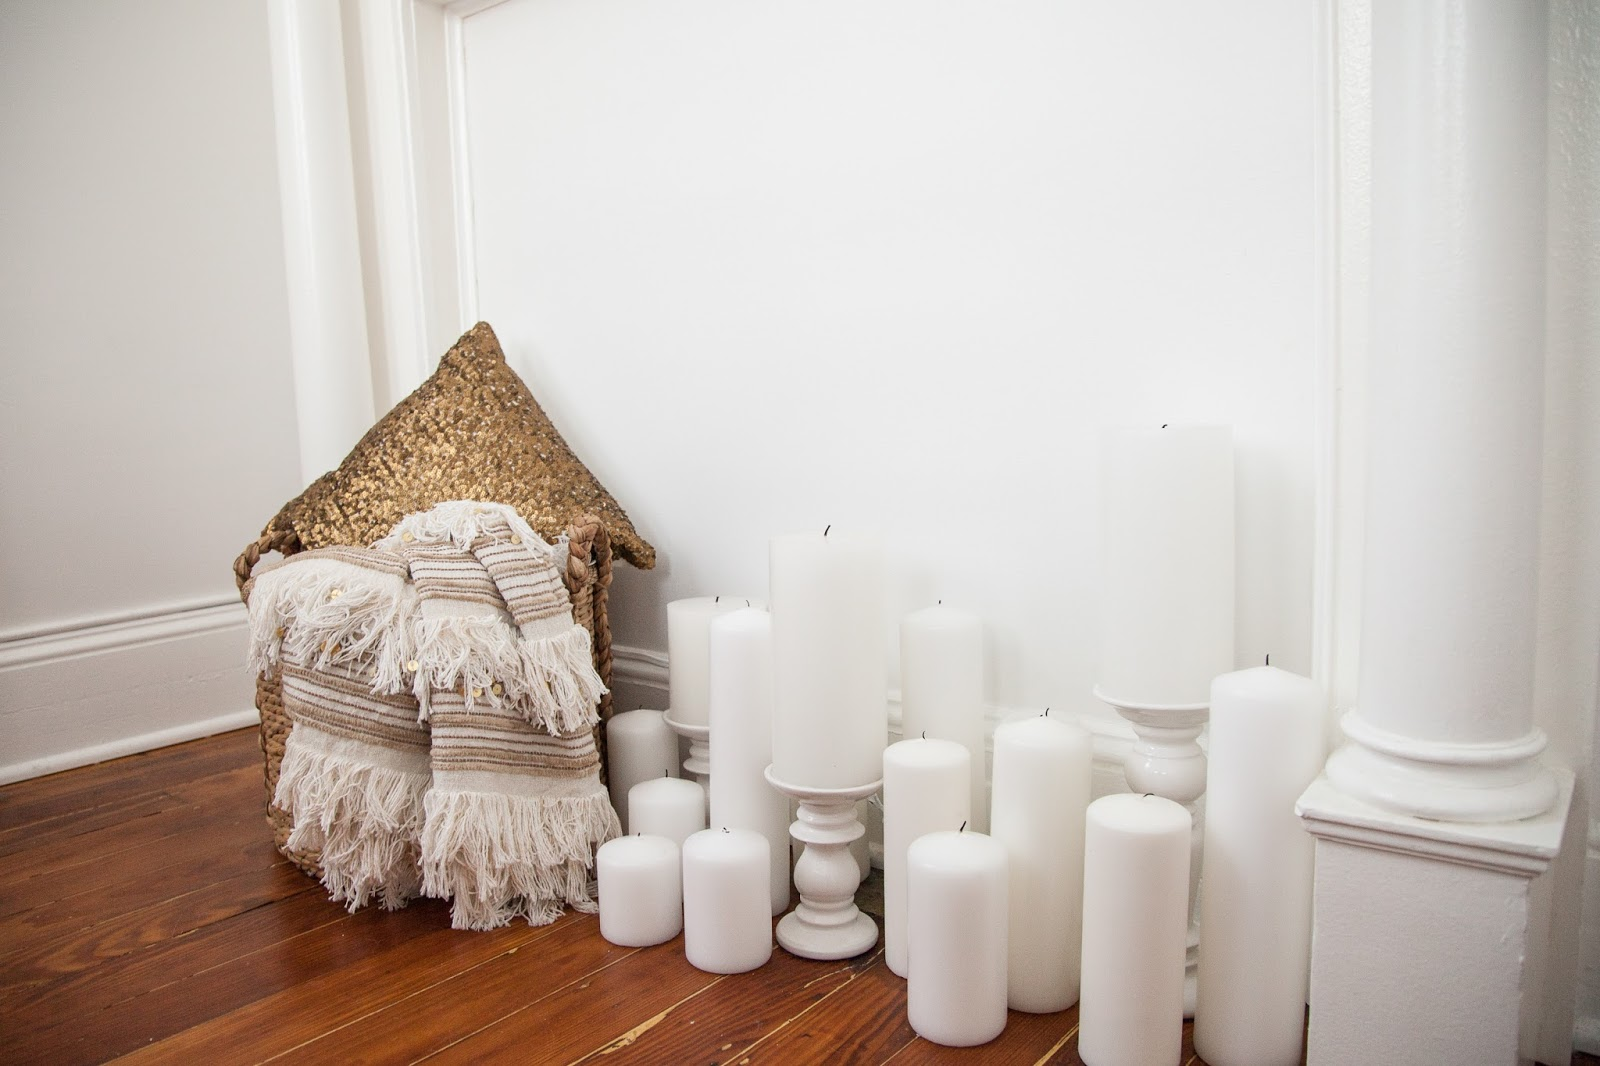 Mantle Decor with Pillar Candles and Throw Blanket Basket